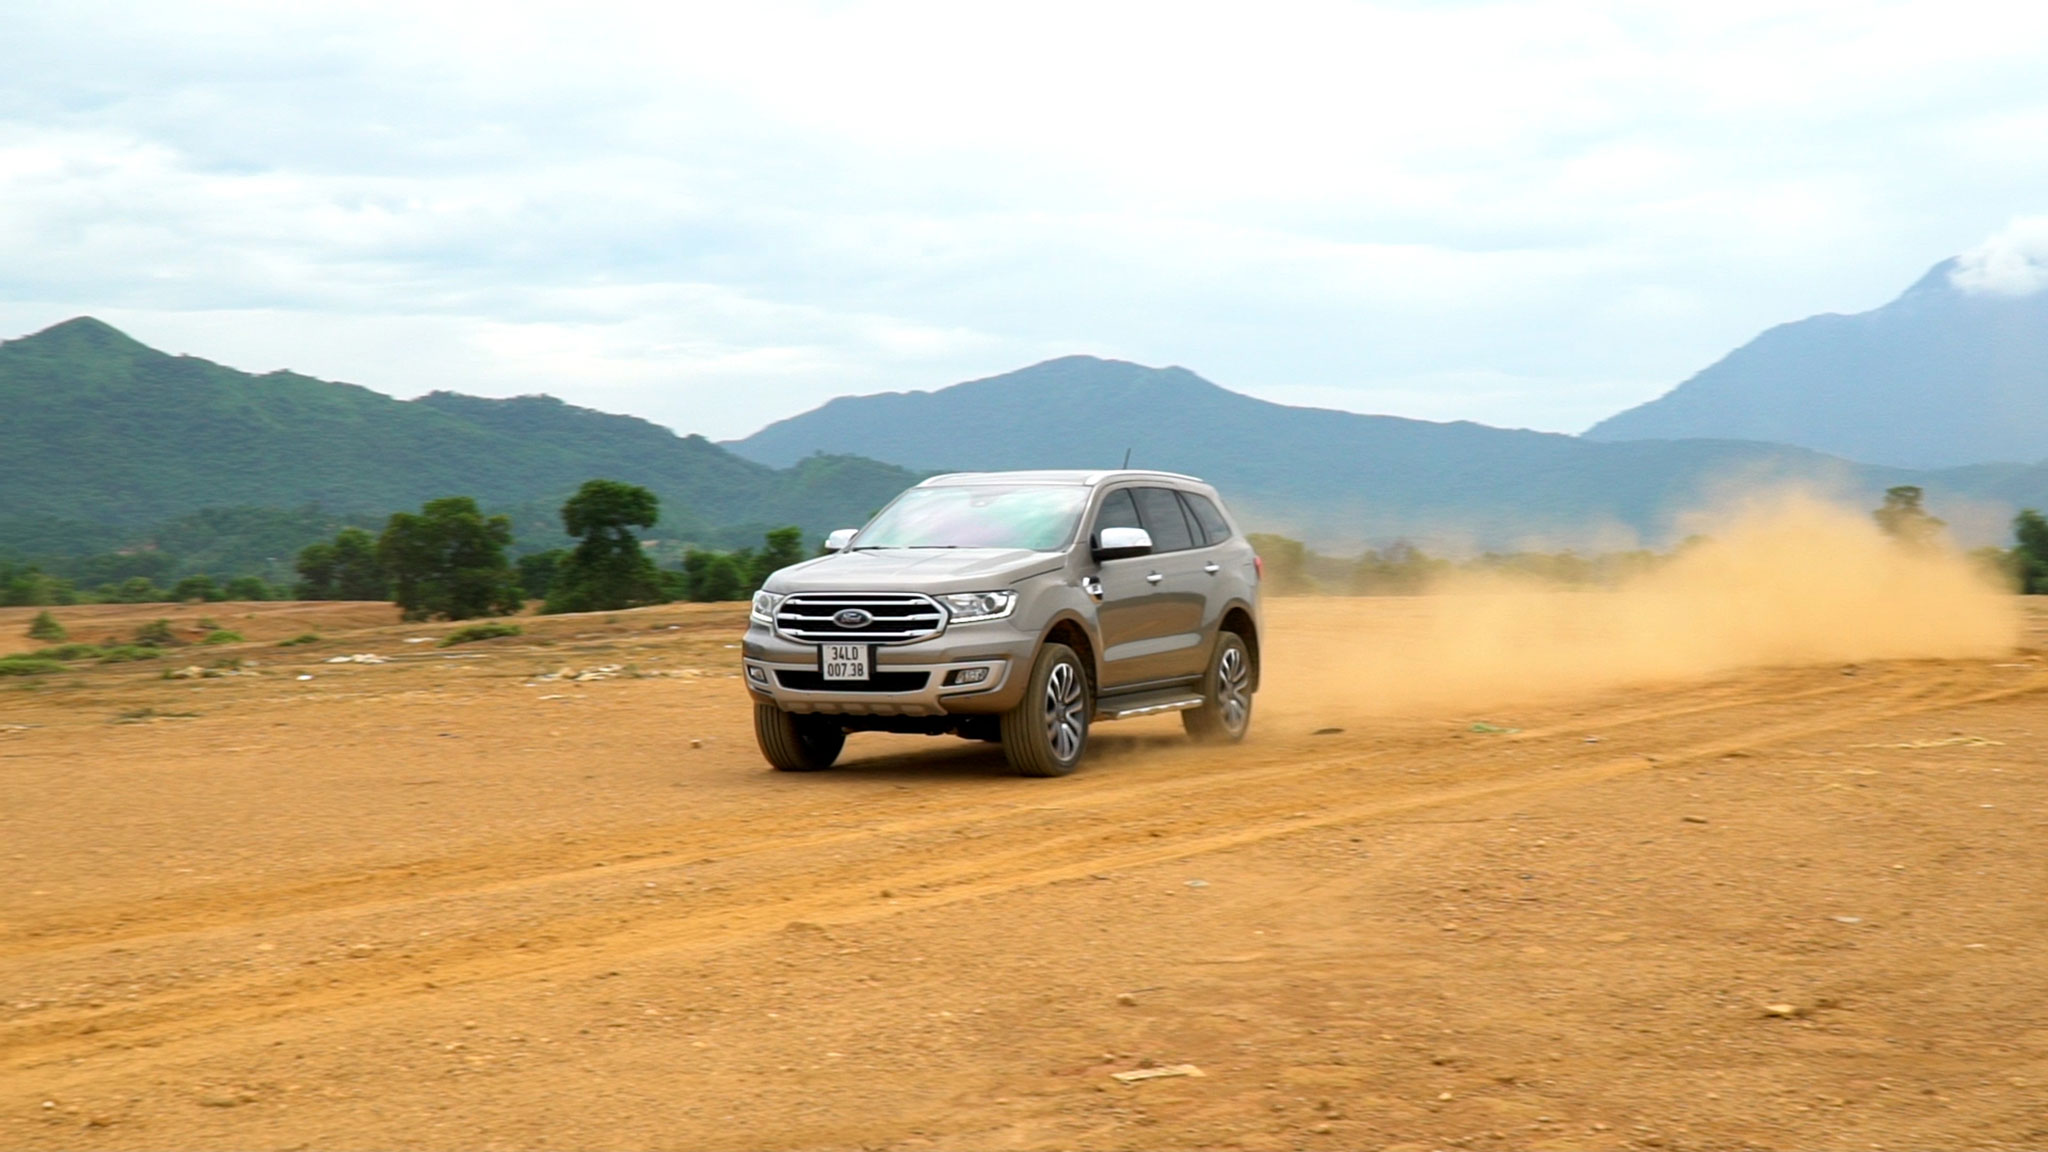 ford-everest-bi-turbo-autodaily-03.jpg